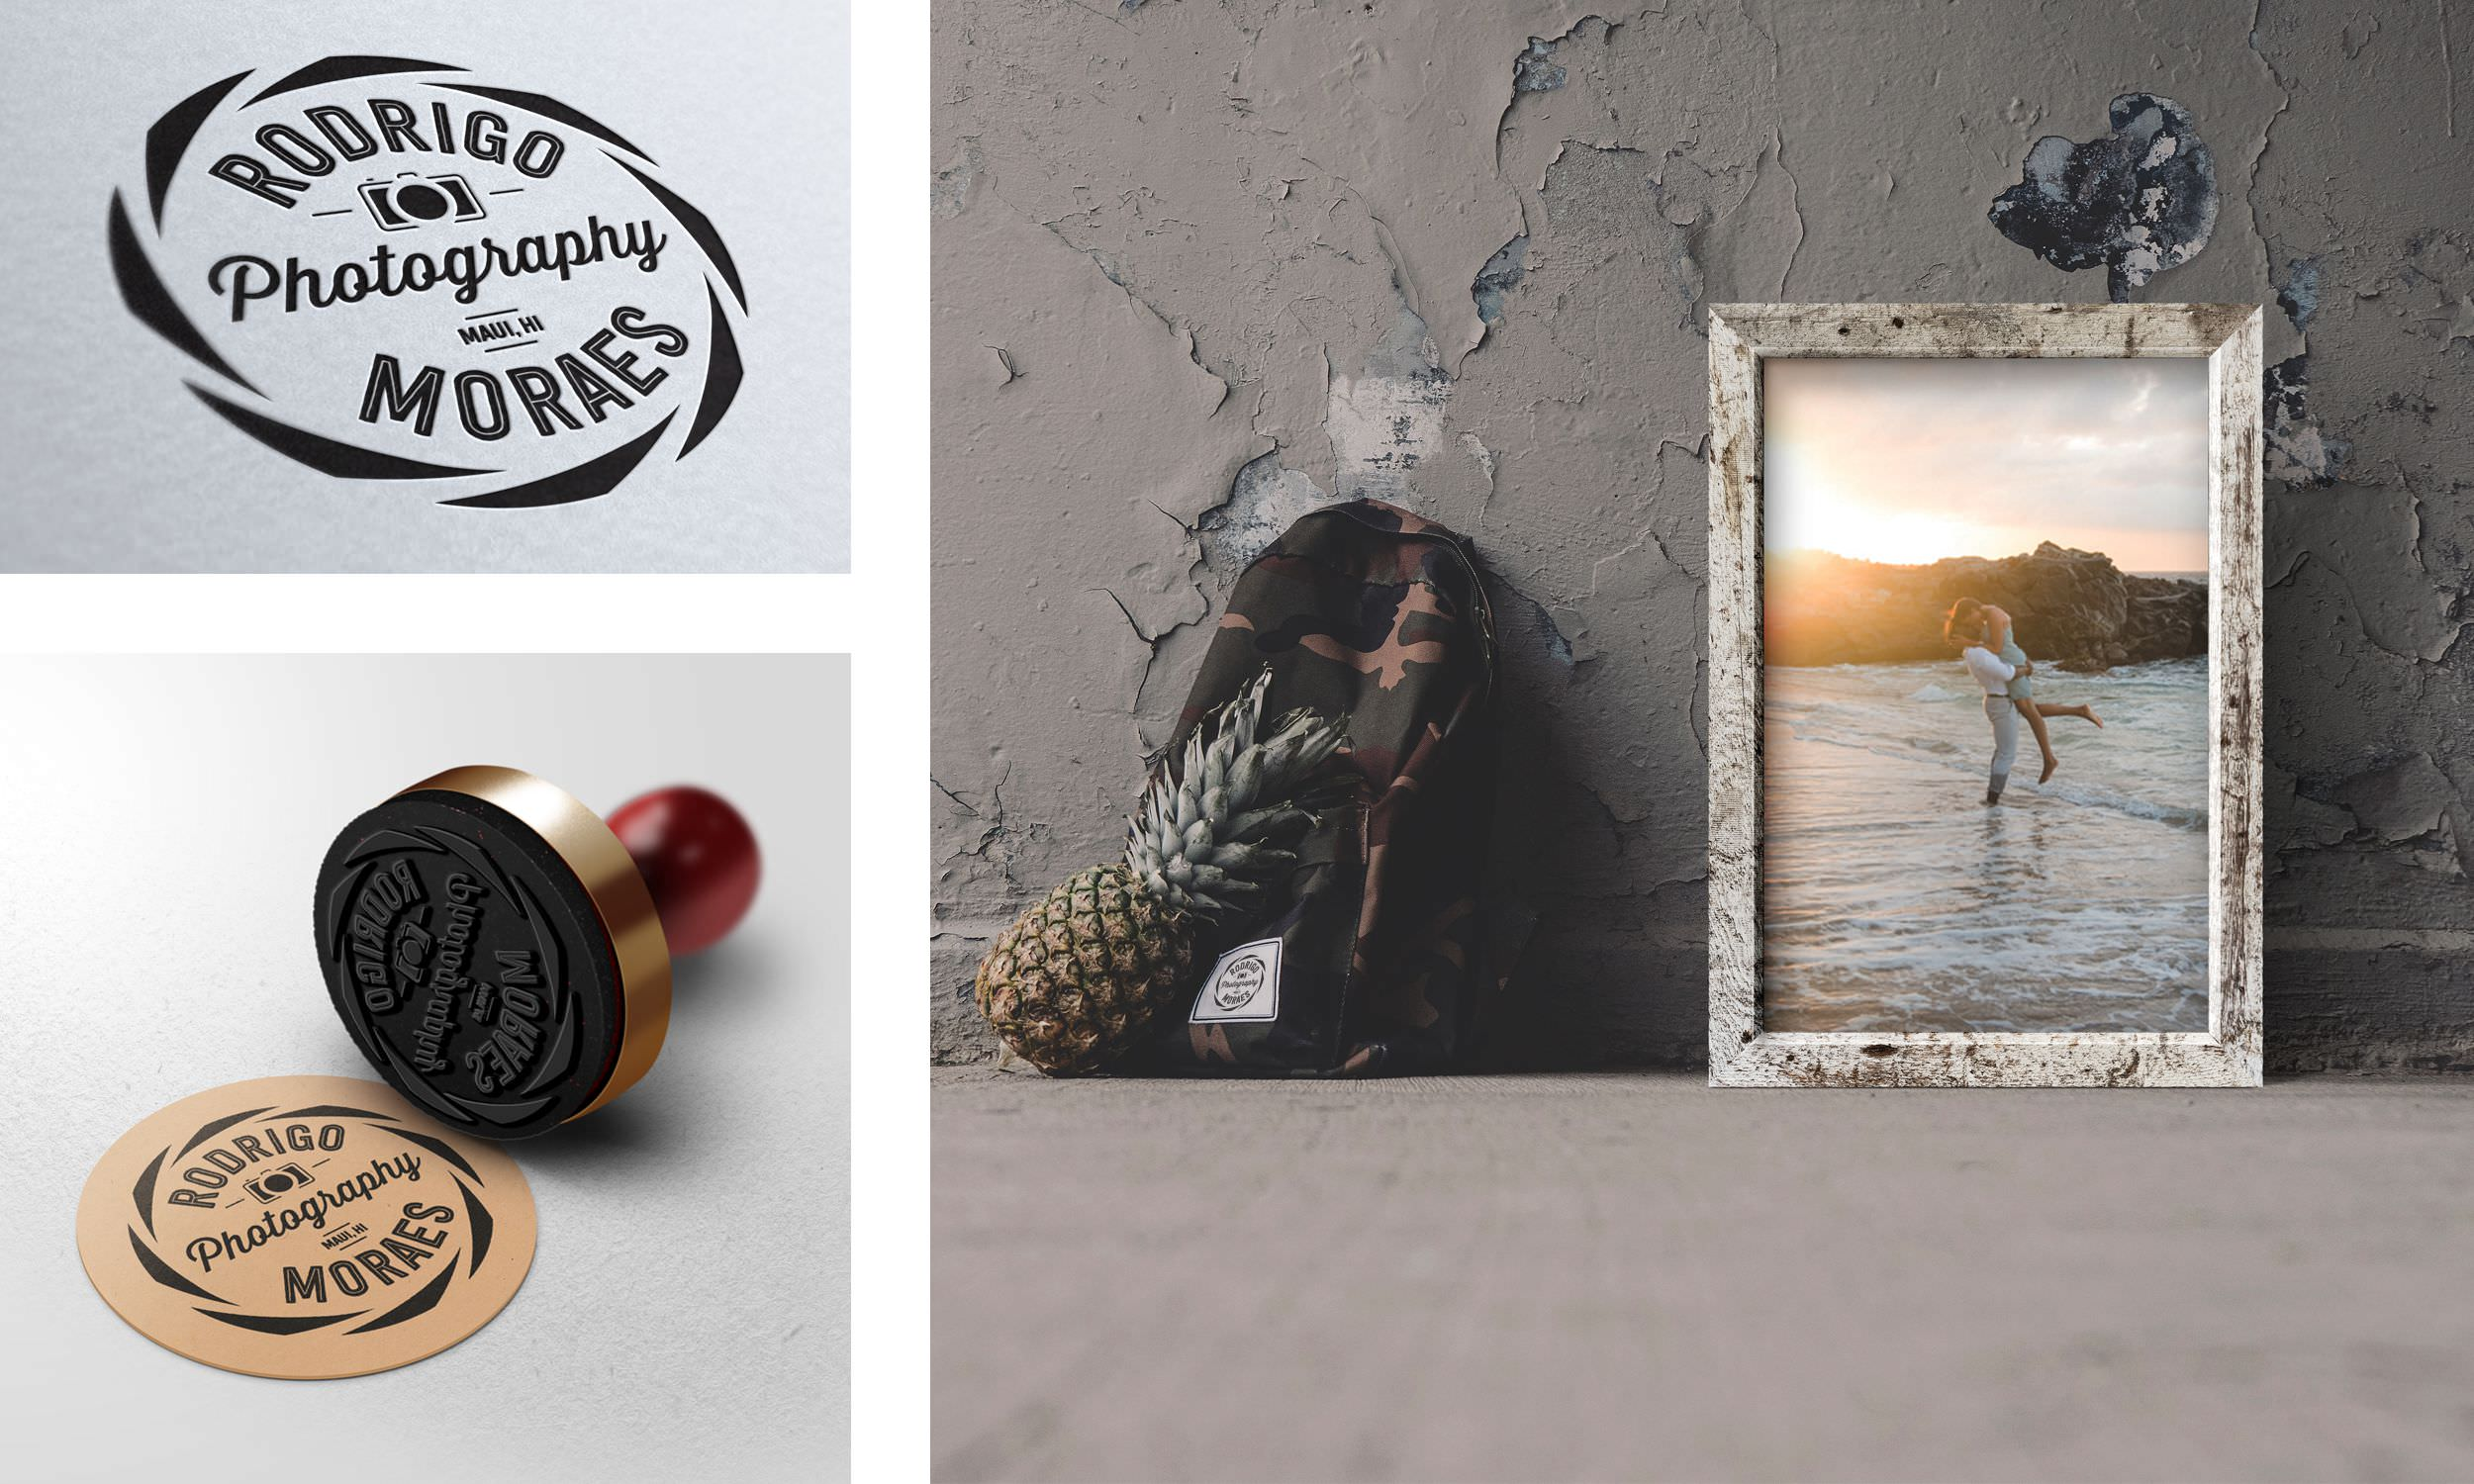 Rodrigo Moraes Photography Logo, Stamp, and Image